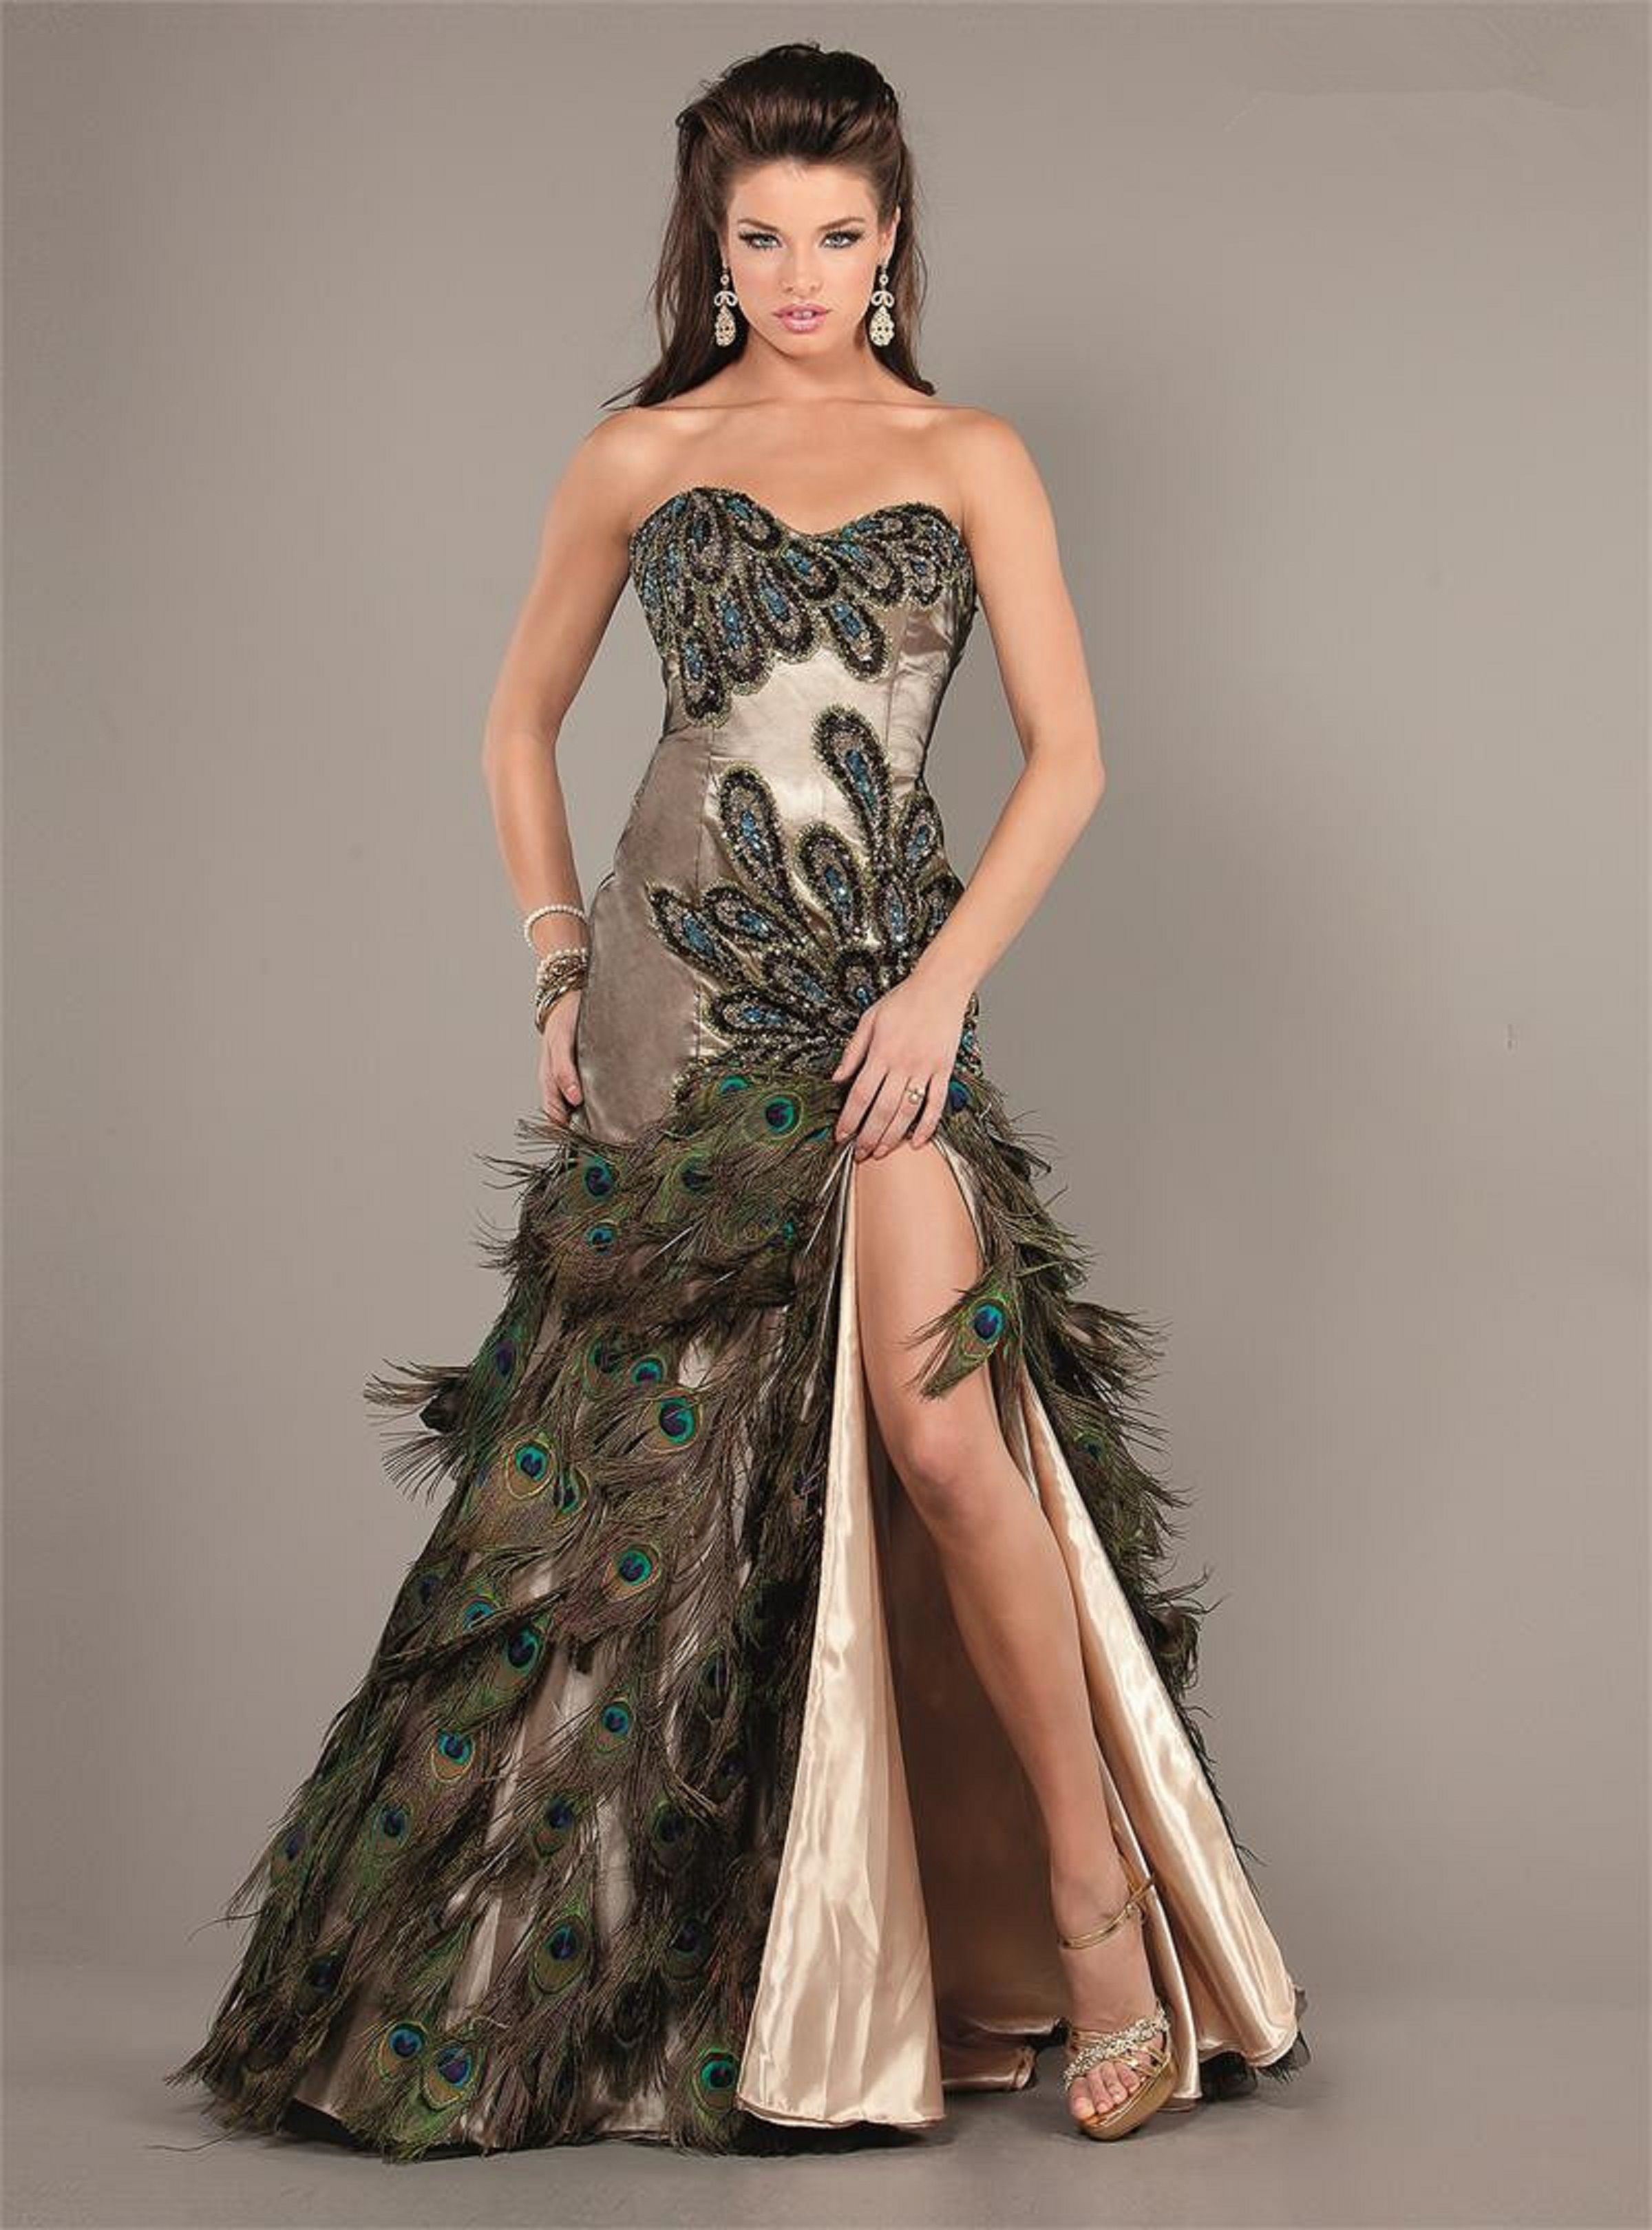 7bd9f4fb6dc8 Peacock Feathers Dresses for An Evening Party